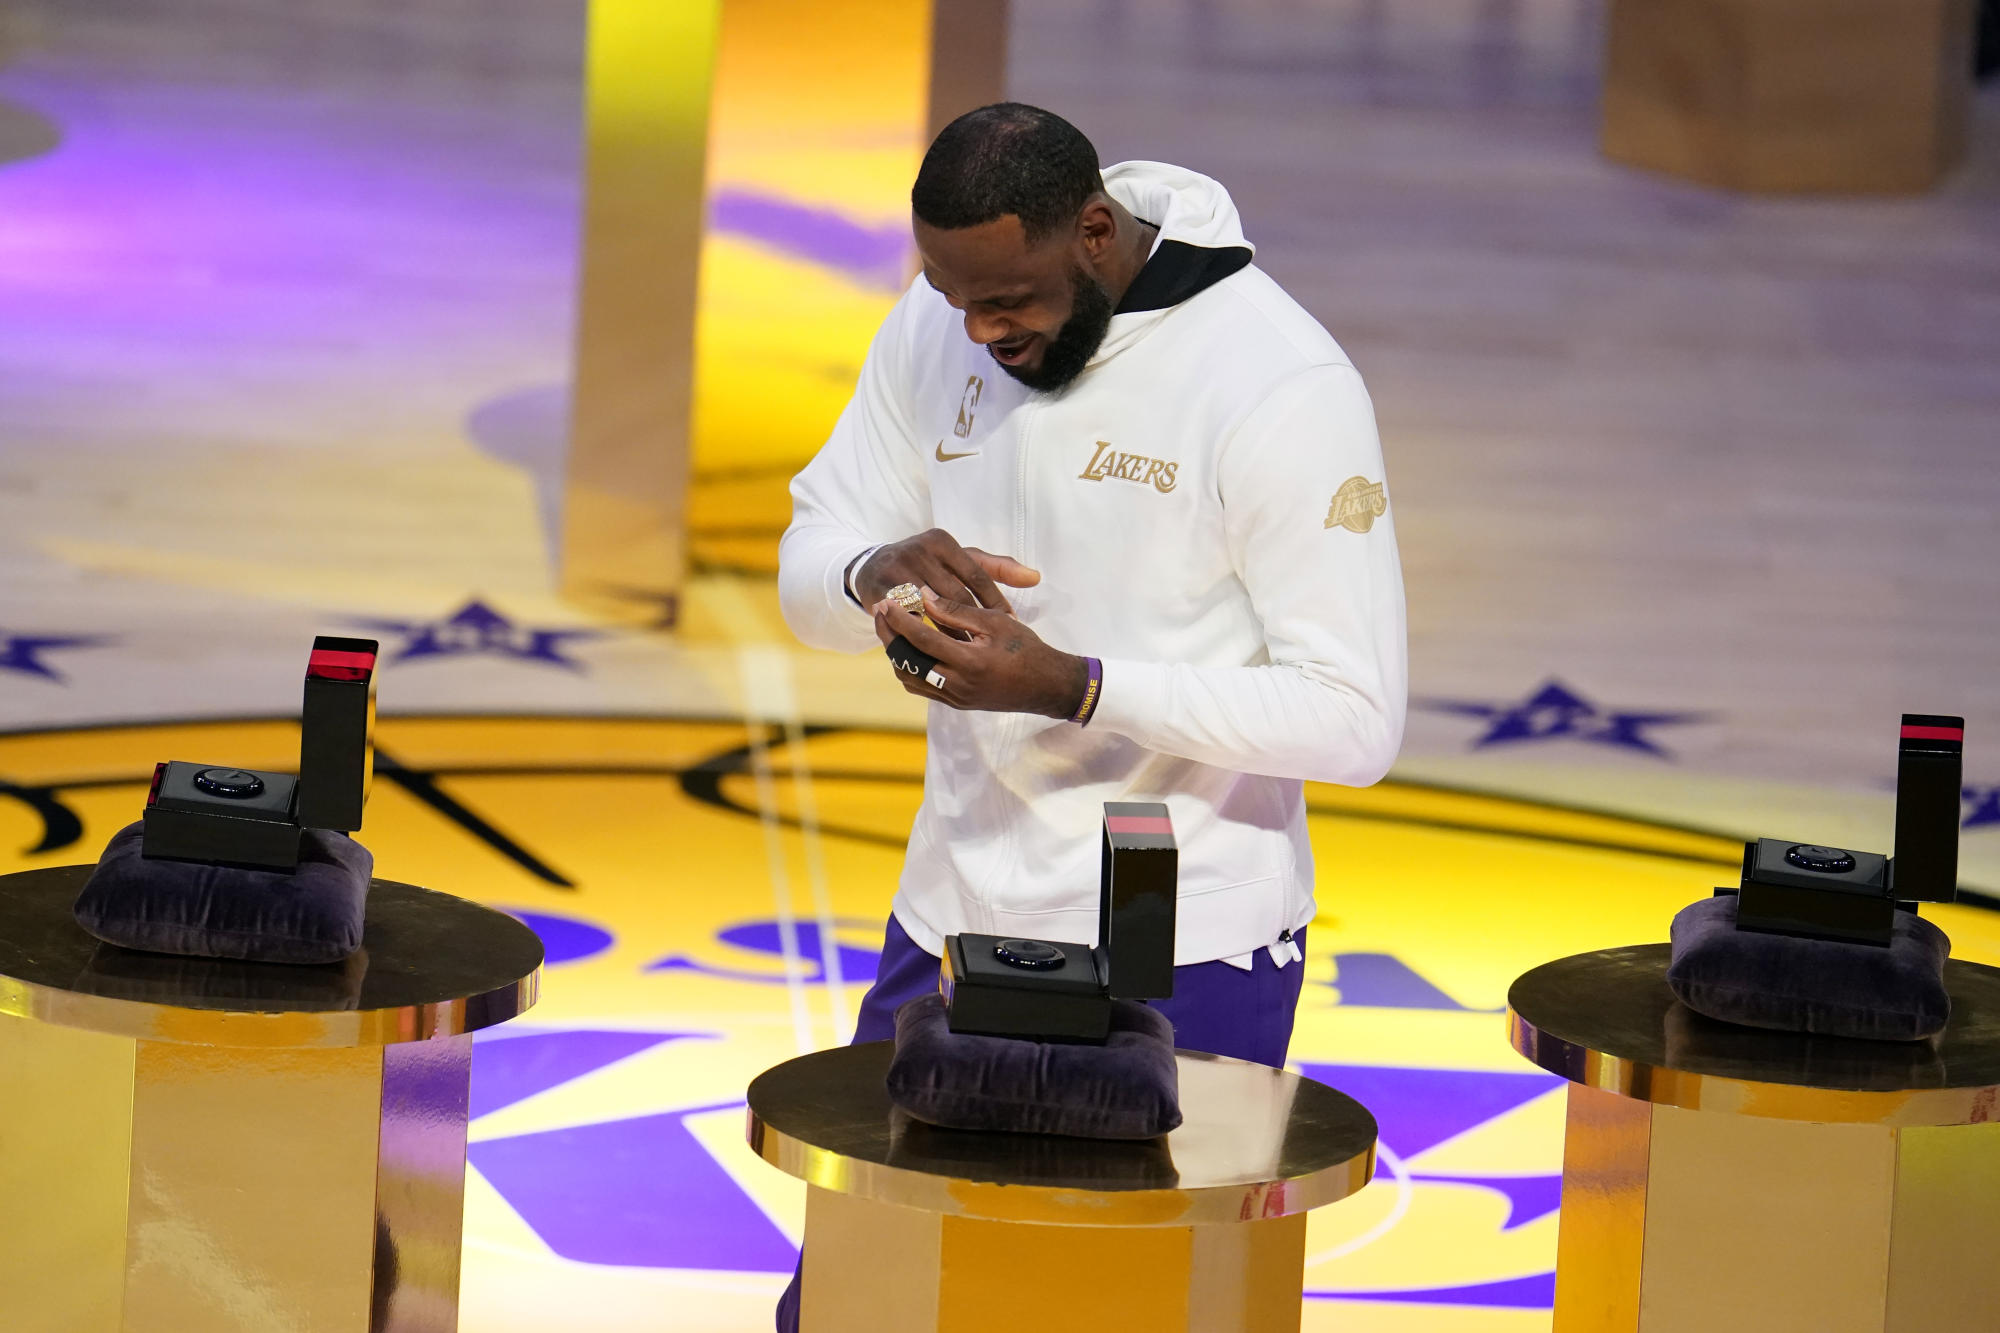 Nba Lakers Honor Kobe Bryant With 2020 Championship Rings